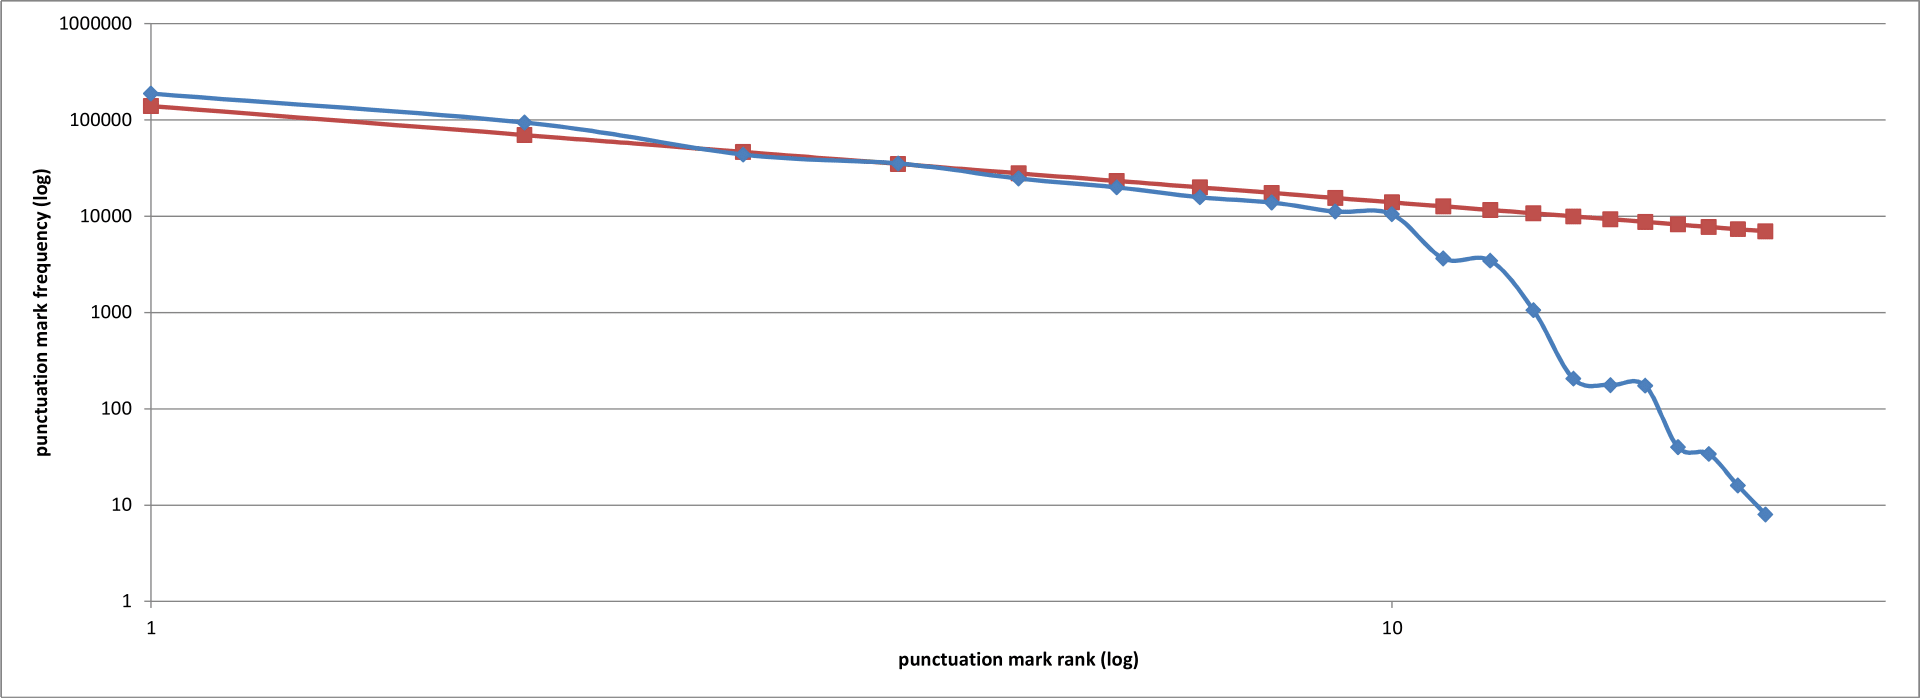 Punctuation mark counts (blue) in a selection of works from Project Gutenberg, ordered from most to least common. Also shown are the projected counts (red). Both axes are plotted on a logarithmic scale.